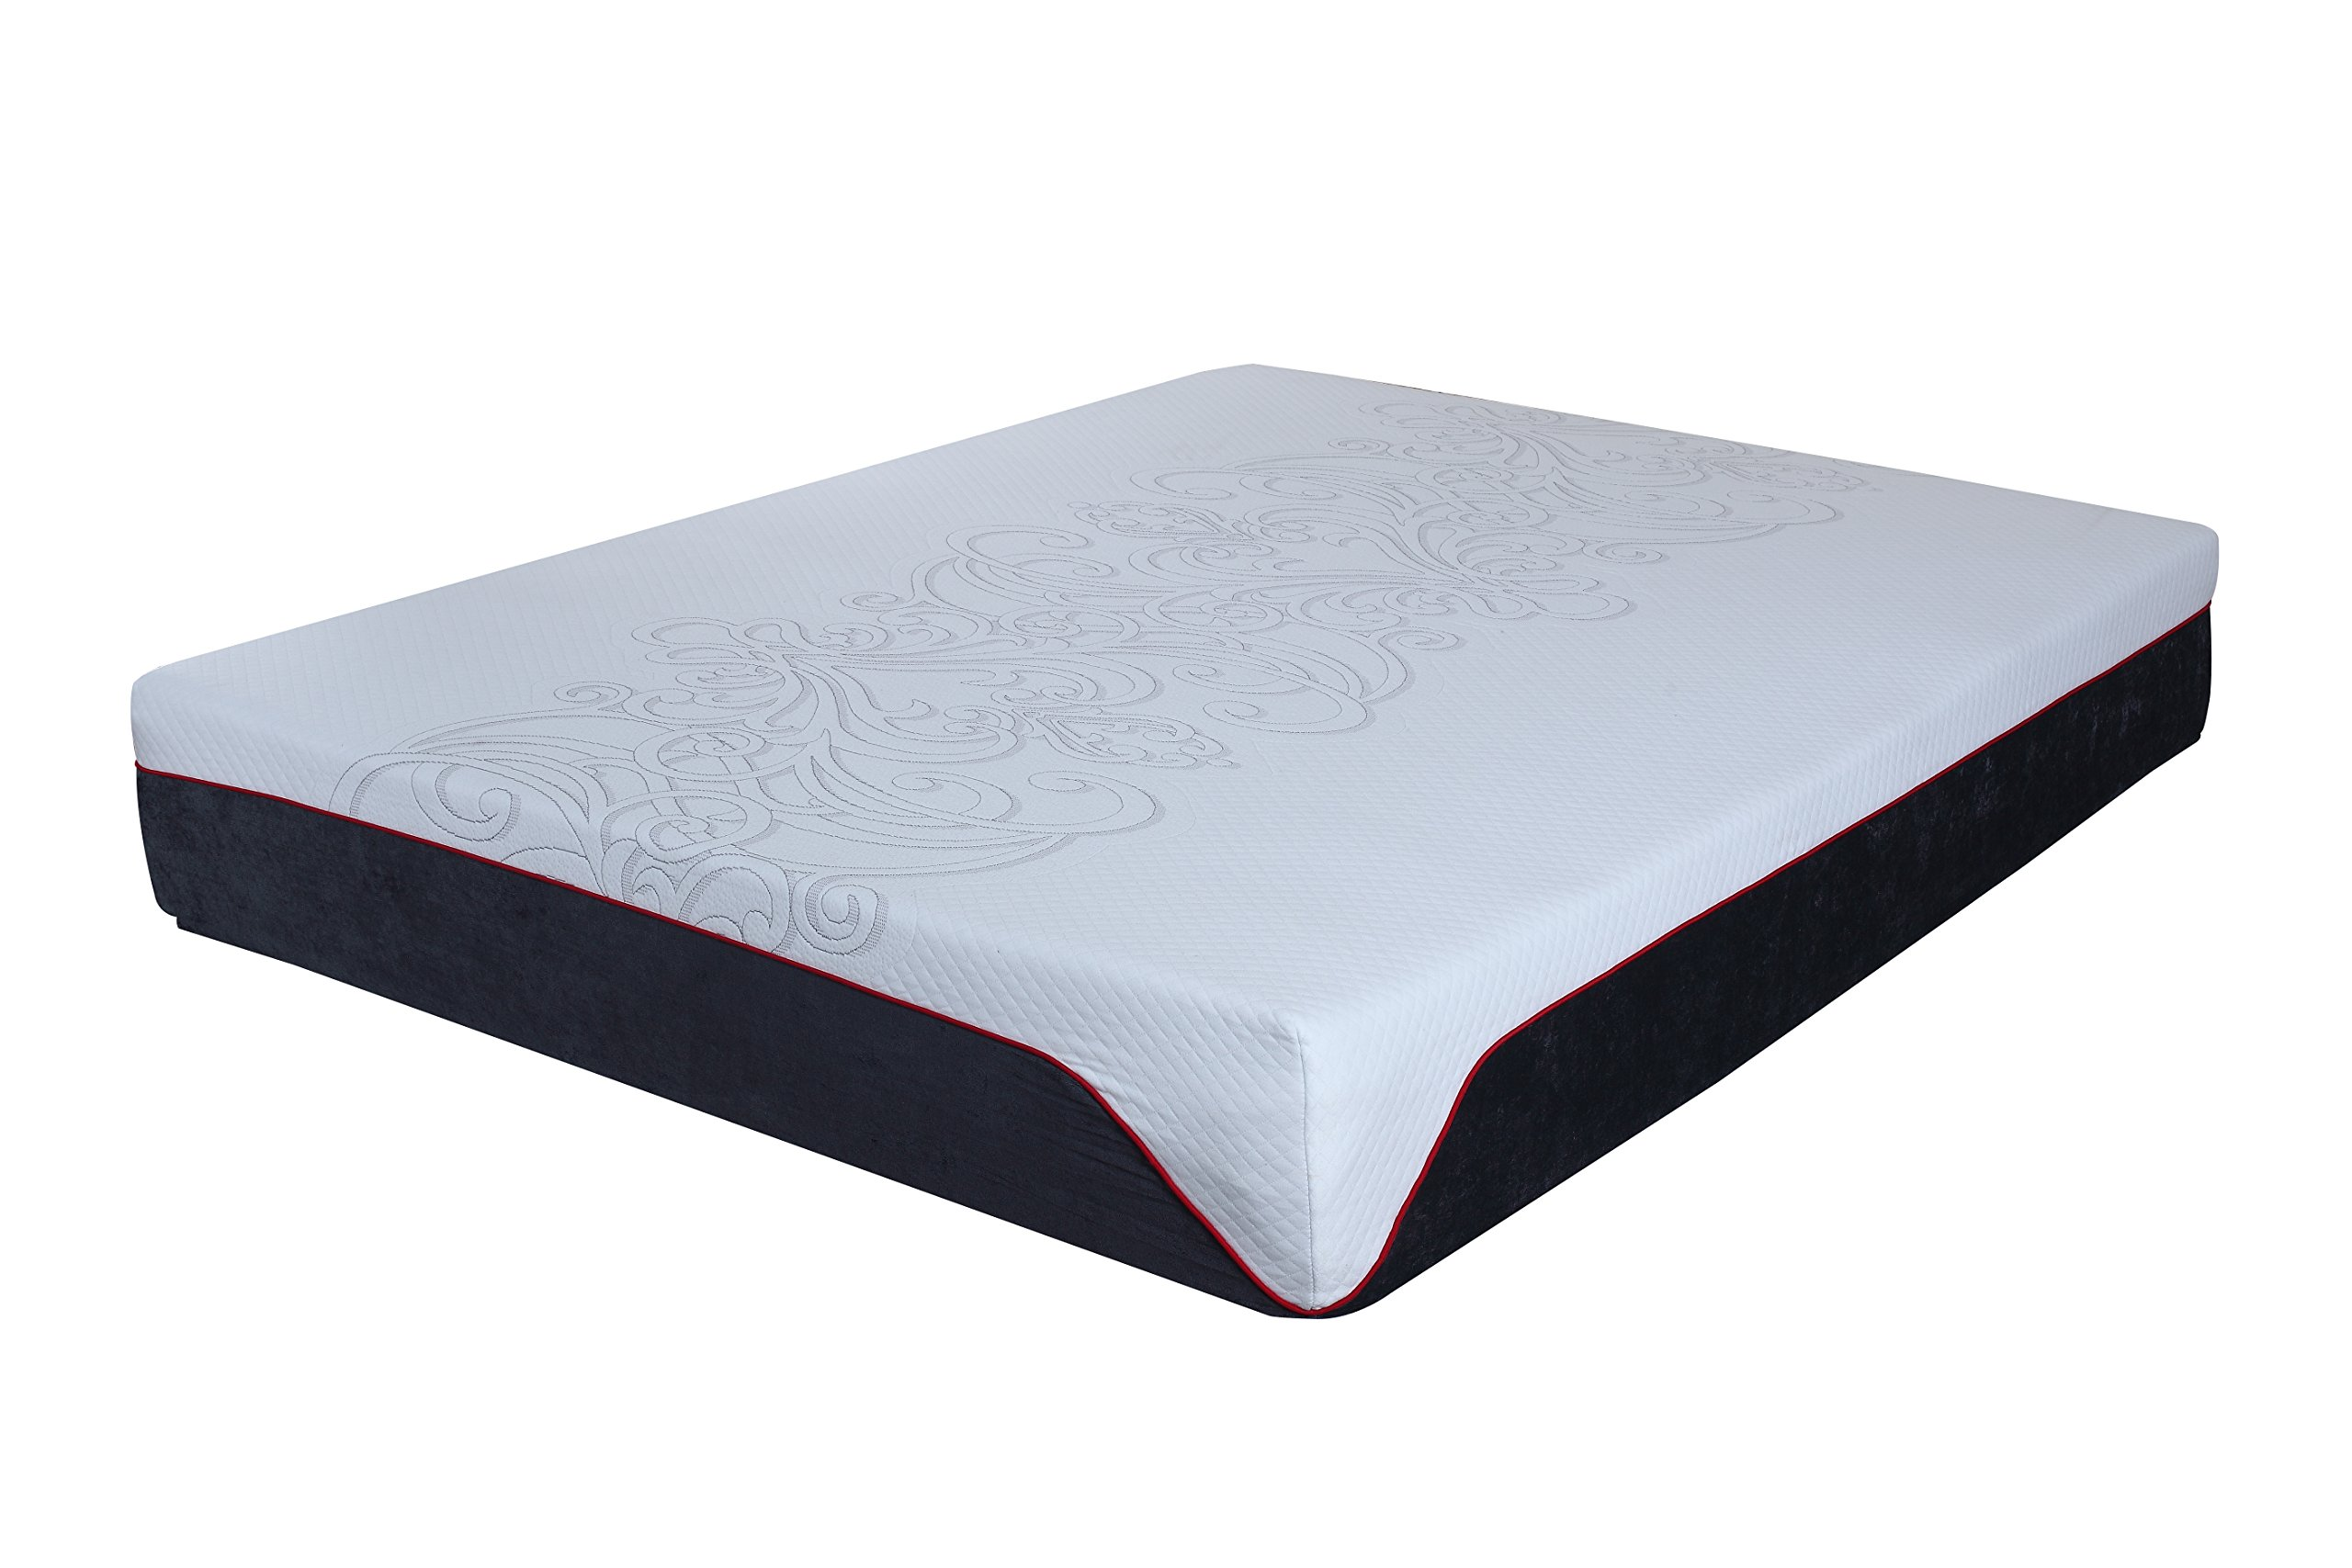 Swiss Ortho Sleep, 12'' High-Density, 3 x Layered reversible LATEX & MEMORY FOAM MATTRESS, w/ Bamboo Cover, All Sizes (Queen)